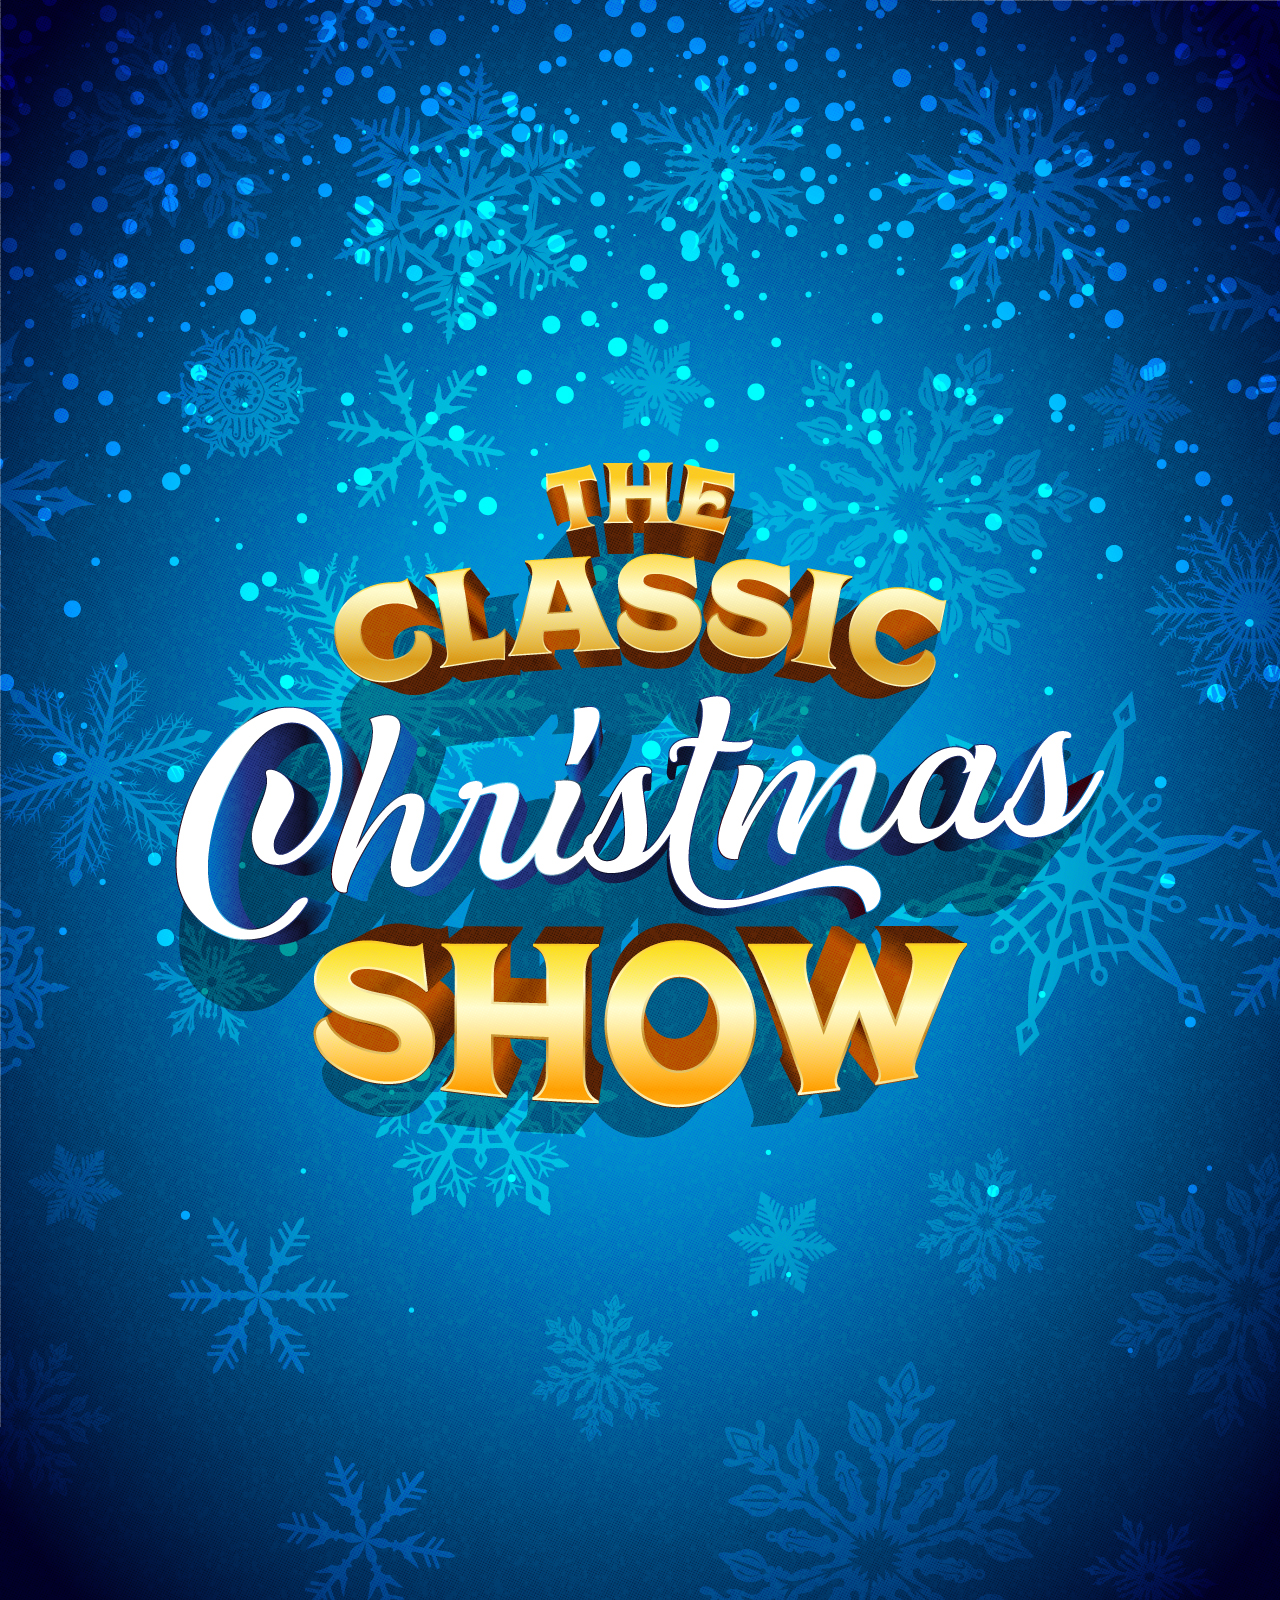 The Classic Christmas Show